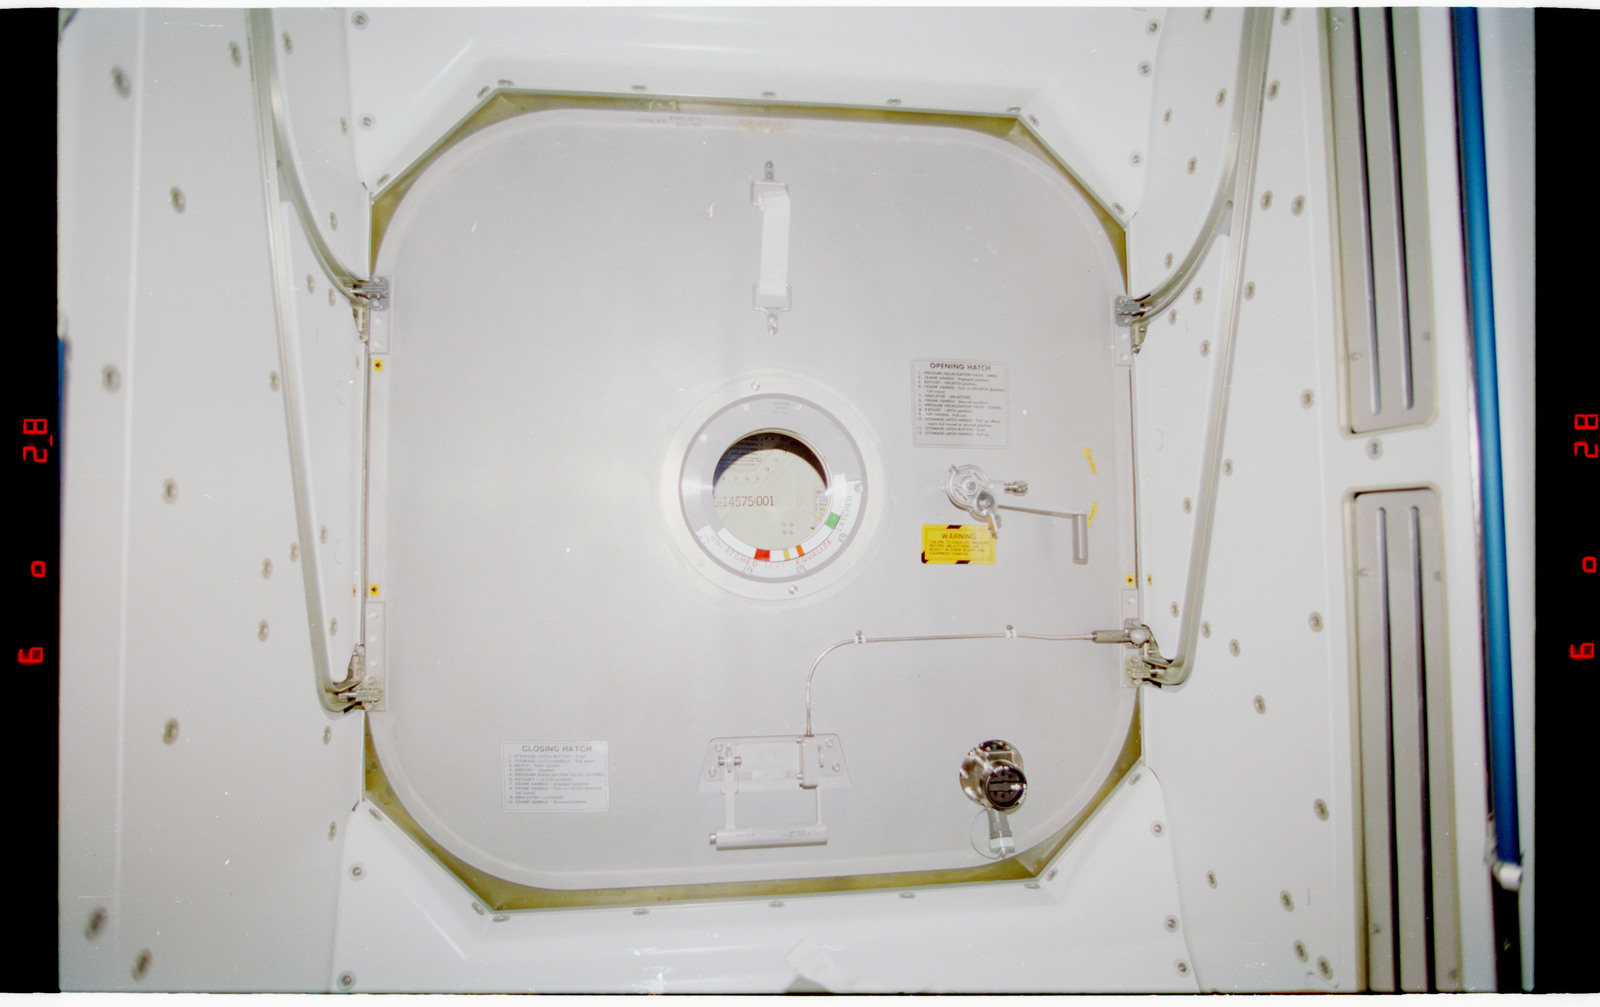 STS088-328-018 - STS-088 - View of the interior of the Node 1/Unity module